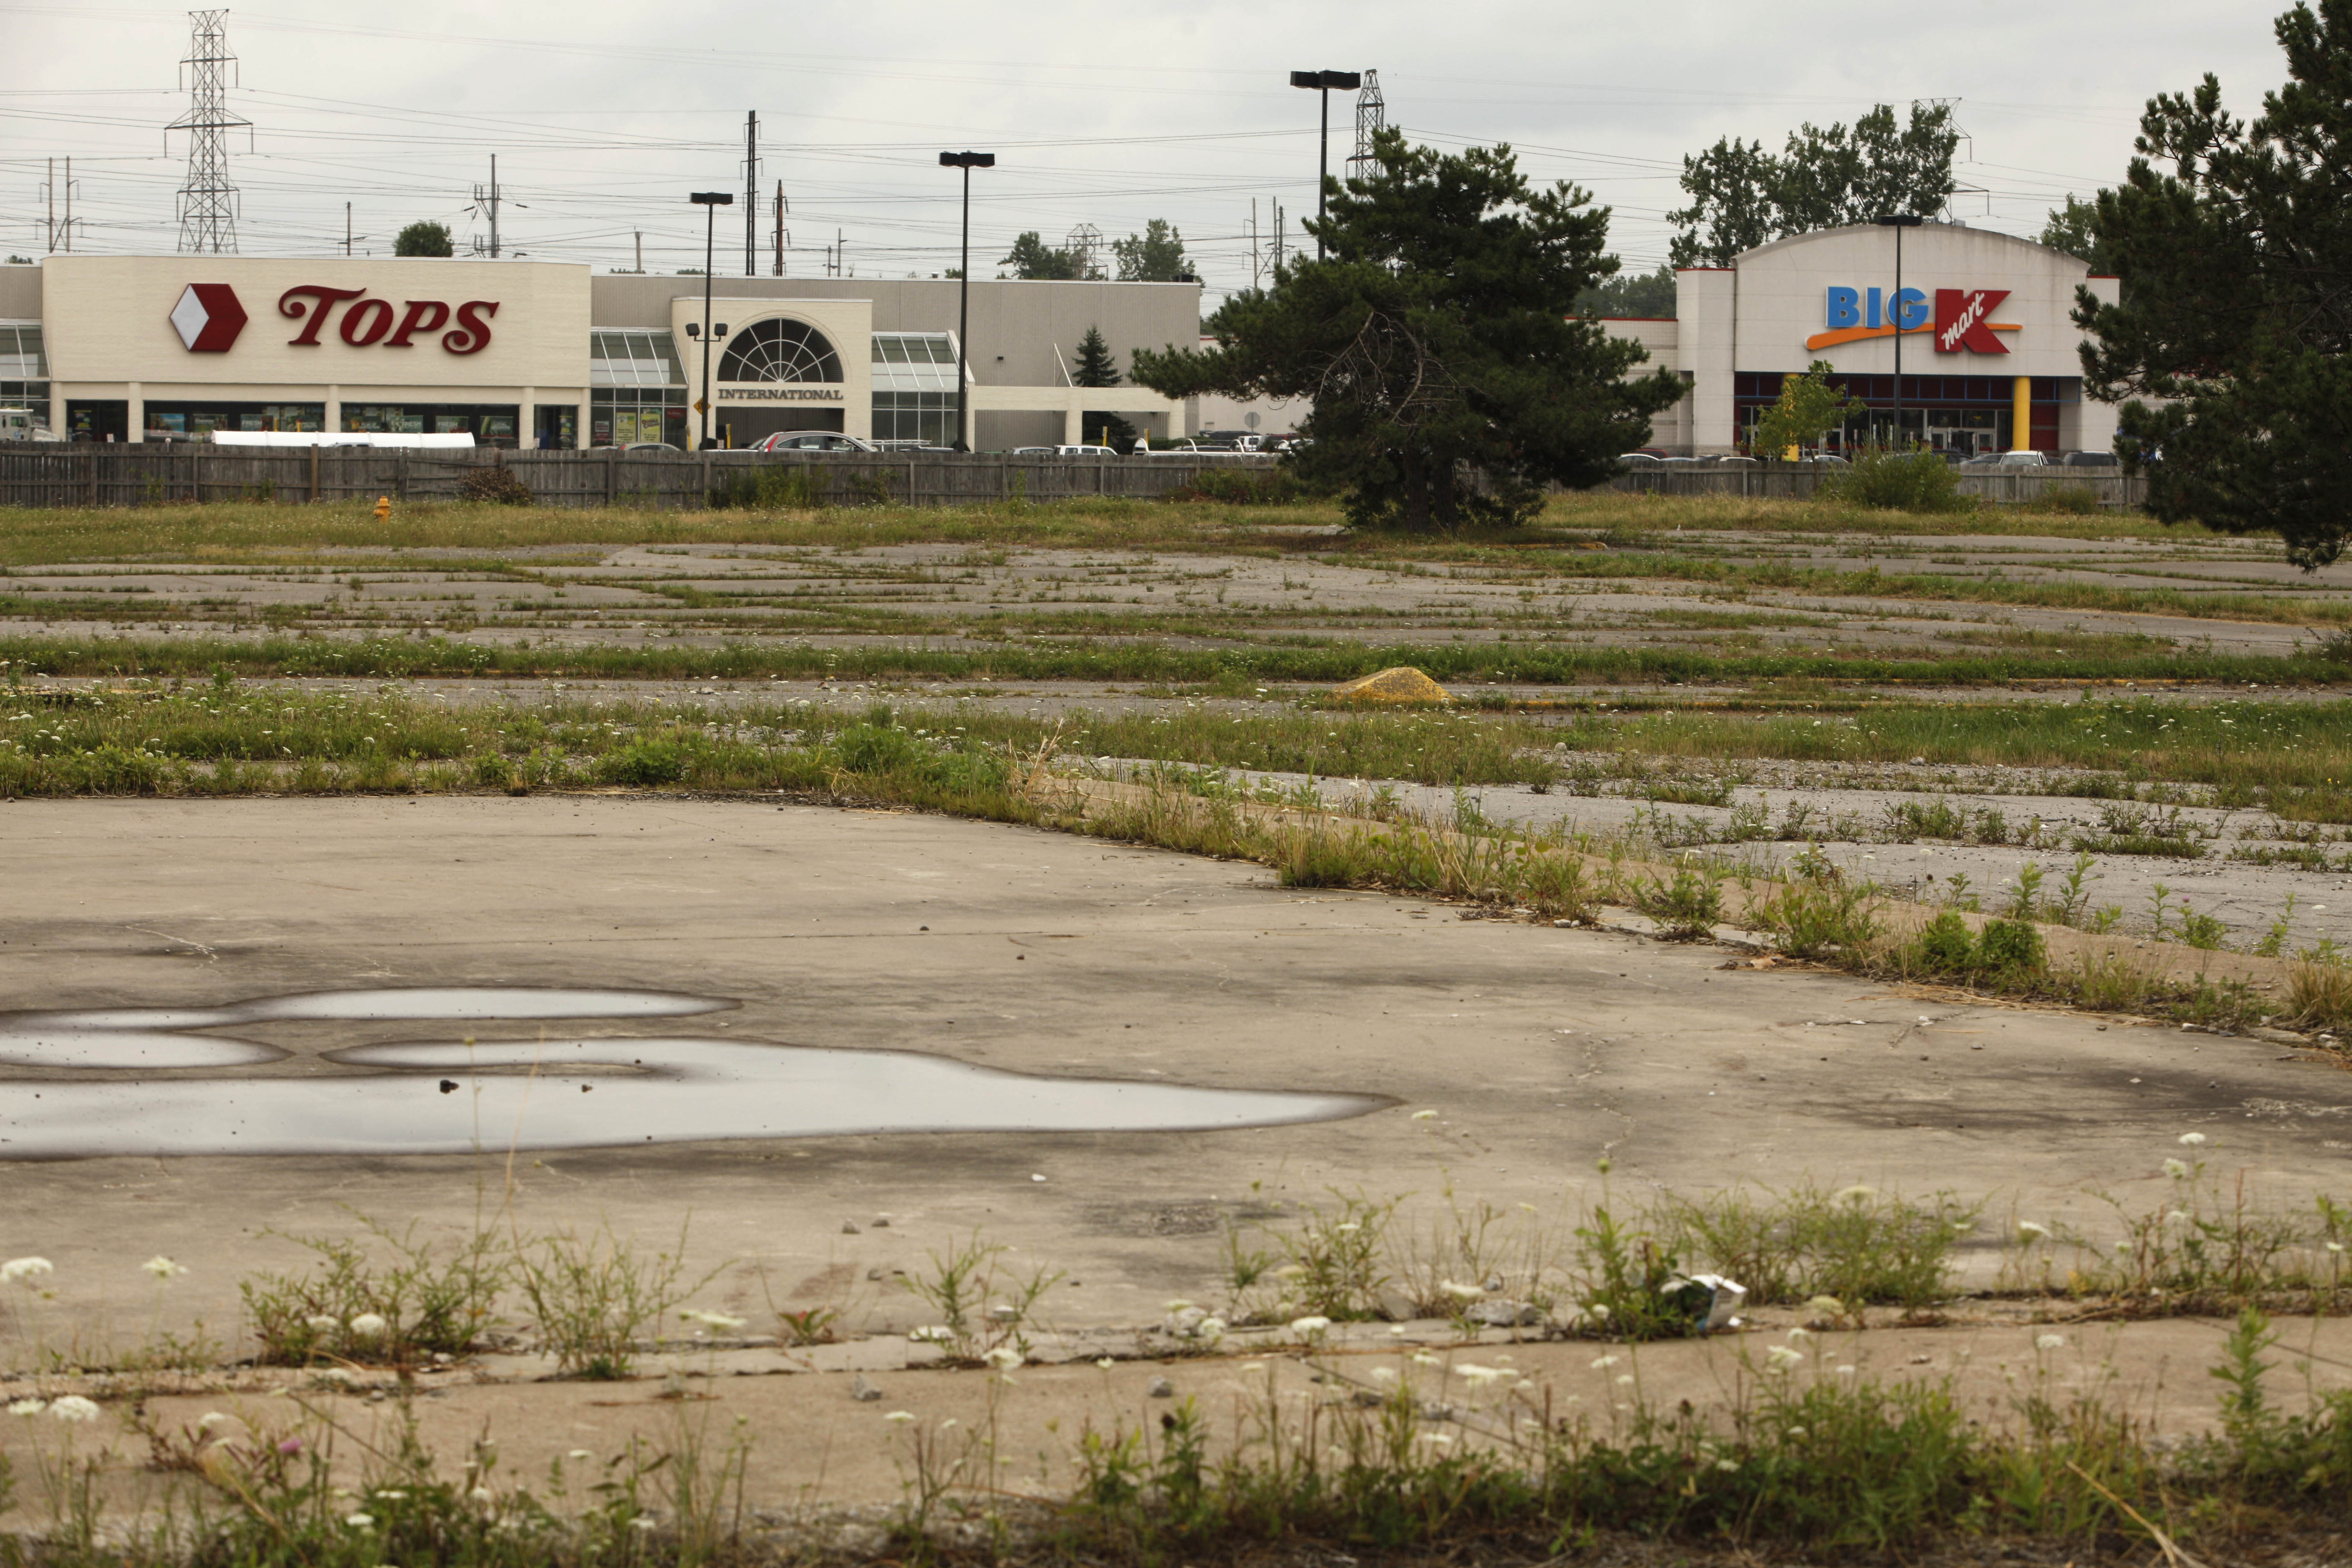 Grass is growing through the foundation of the former West Seneca Mall inside the fenced in area surrounding the stores remaining at what is now known as The Shops at West Seneca on Aug. 15, 2011.